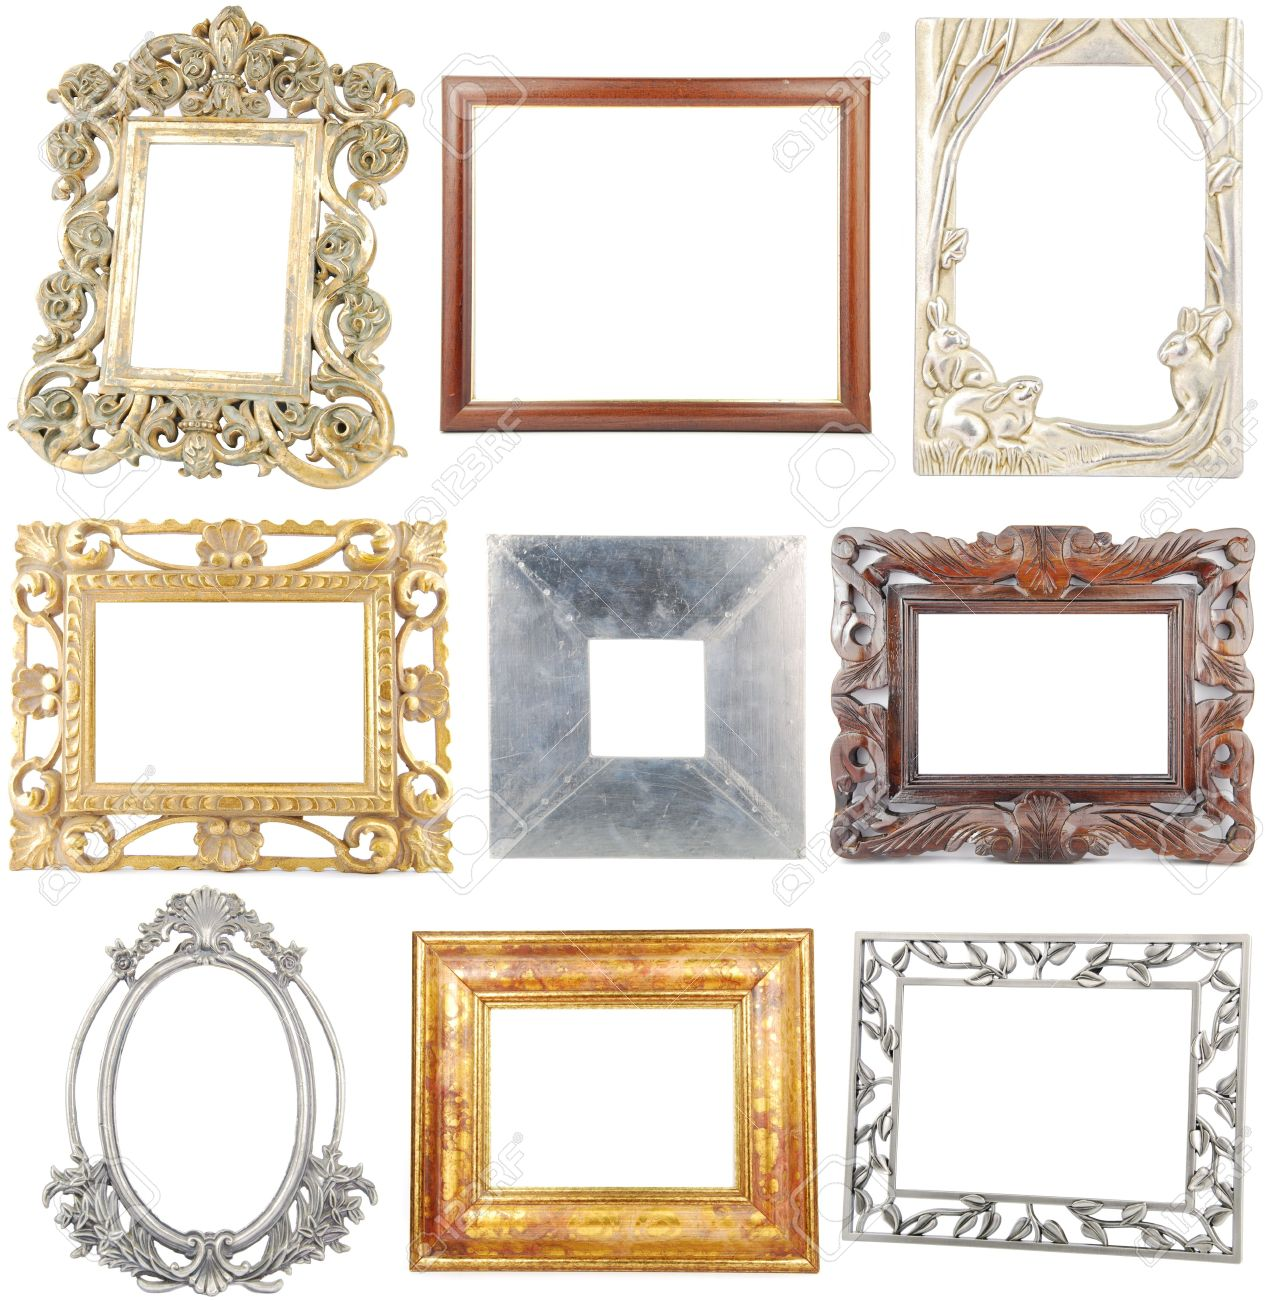 9 Different Wooden/metallic Frames Isolated On White Background ...